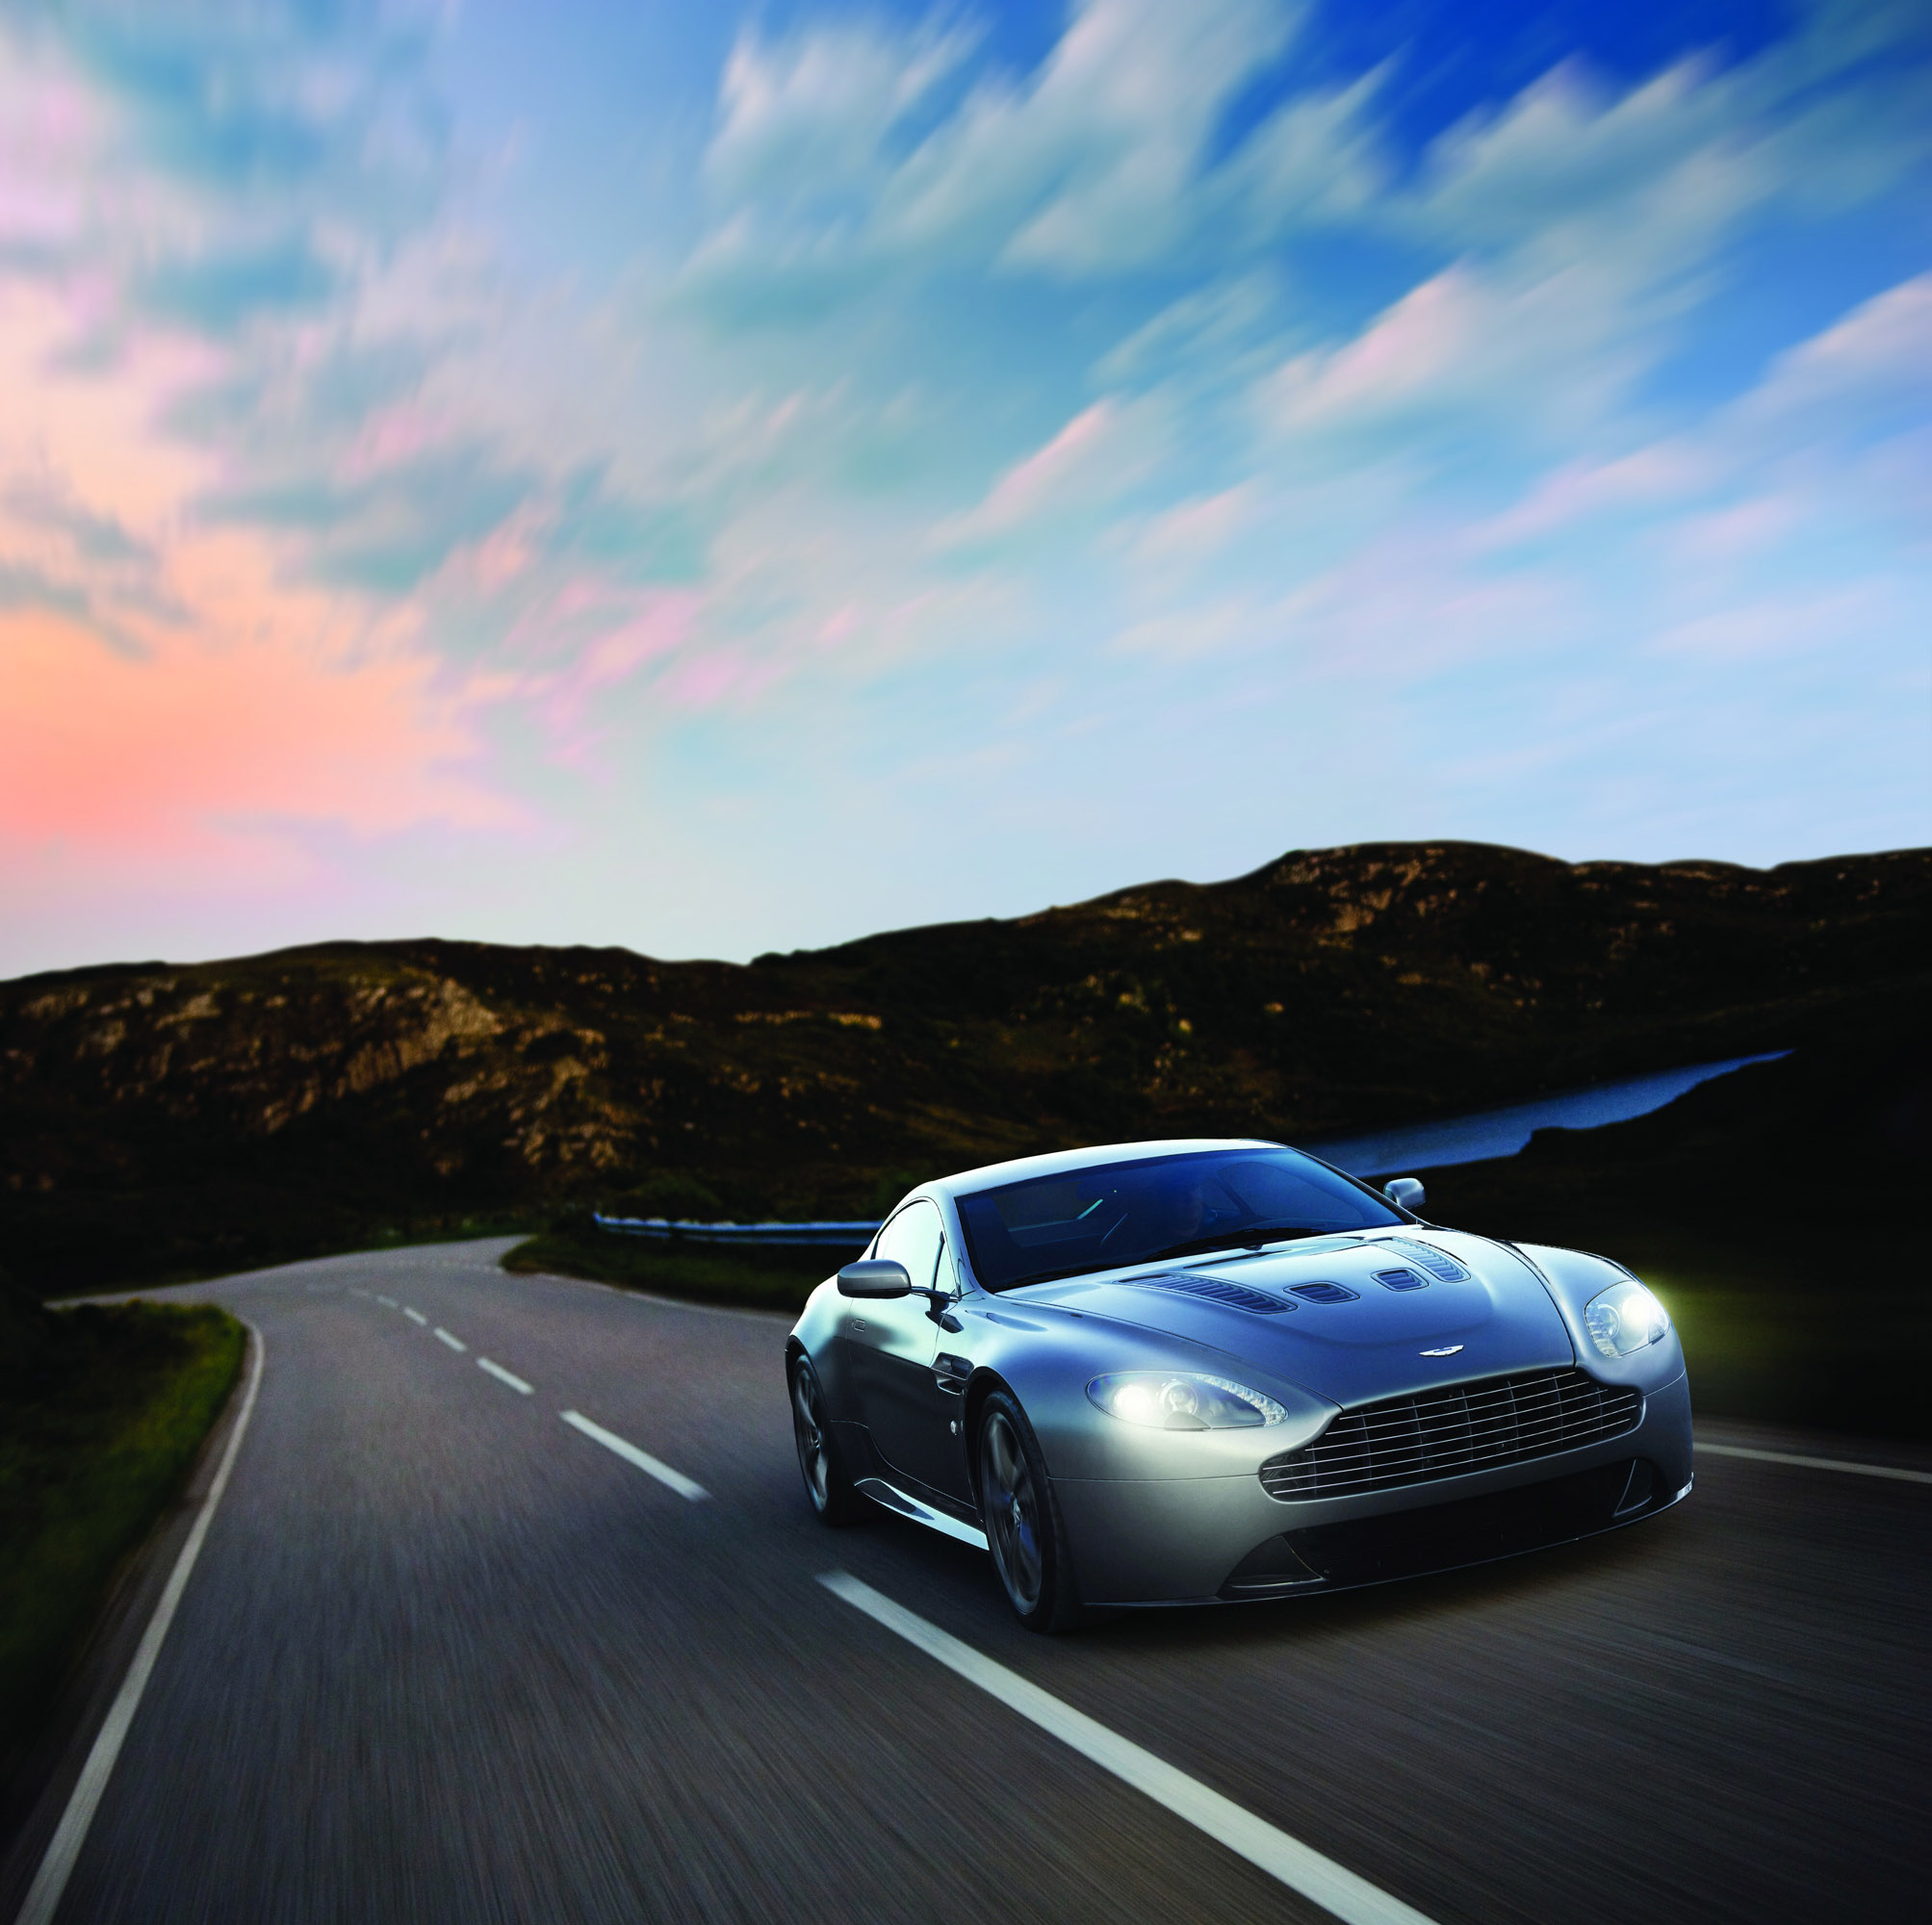 Aston Martin Vanquish V12 Price India Specs And Reviews: Aston Martin V12 Vantage For Sale In North And South America